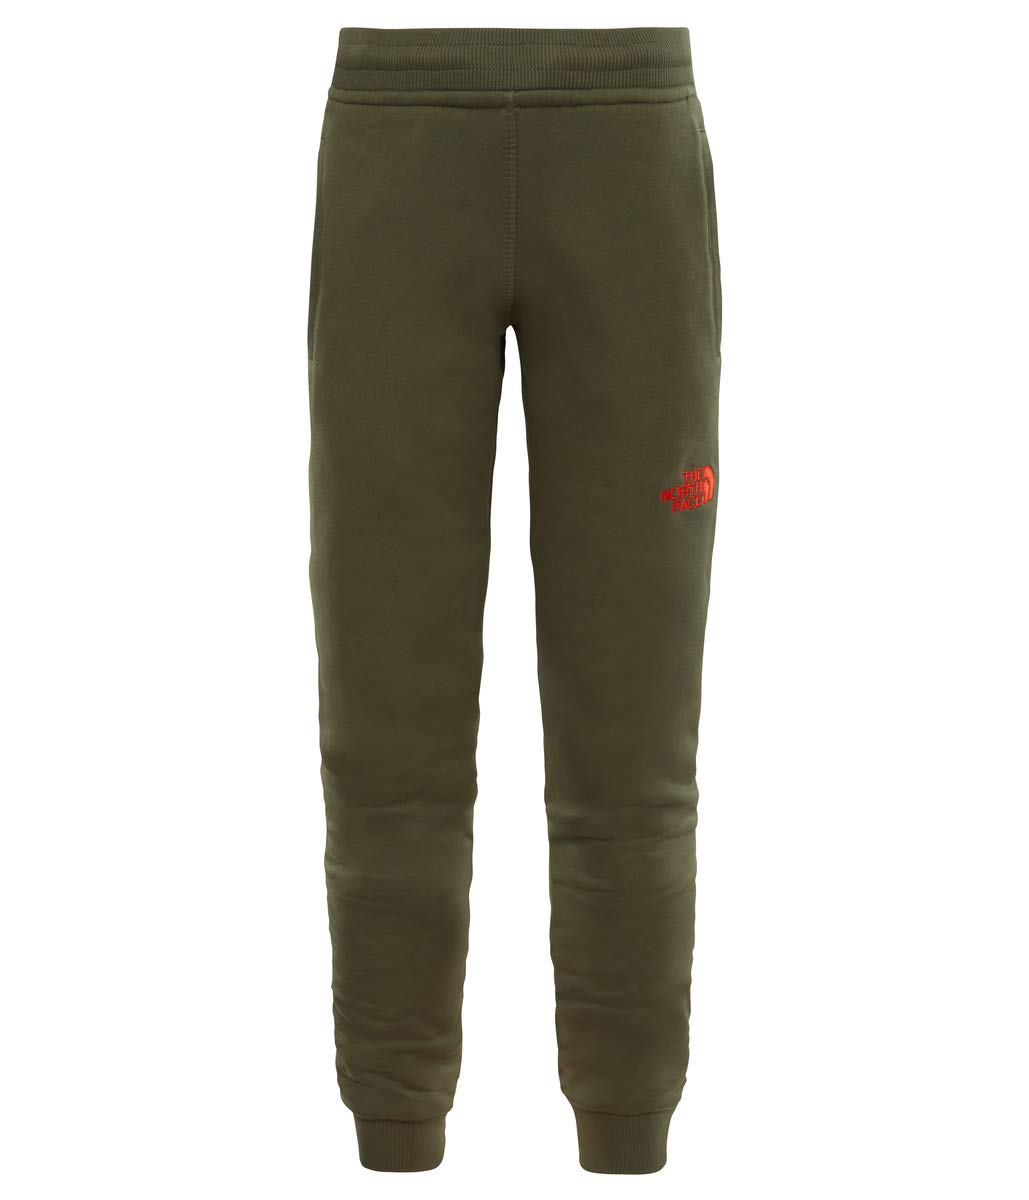 The North Face Y Fleece Pant Pantalón Polar Juvenil, Unisex niños